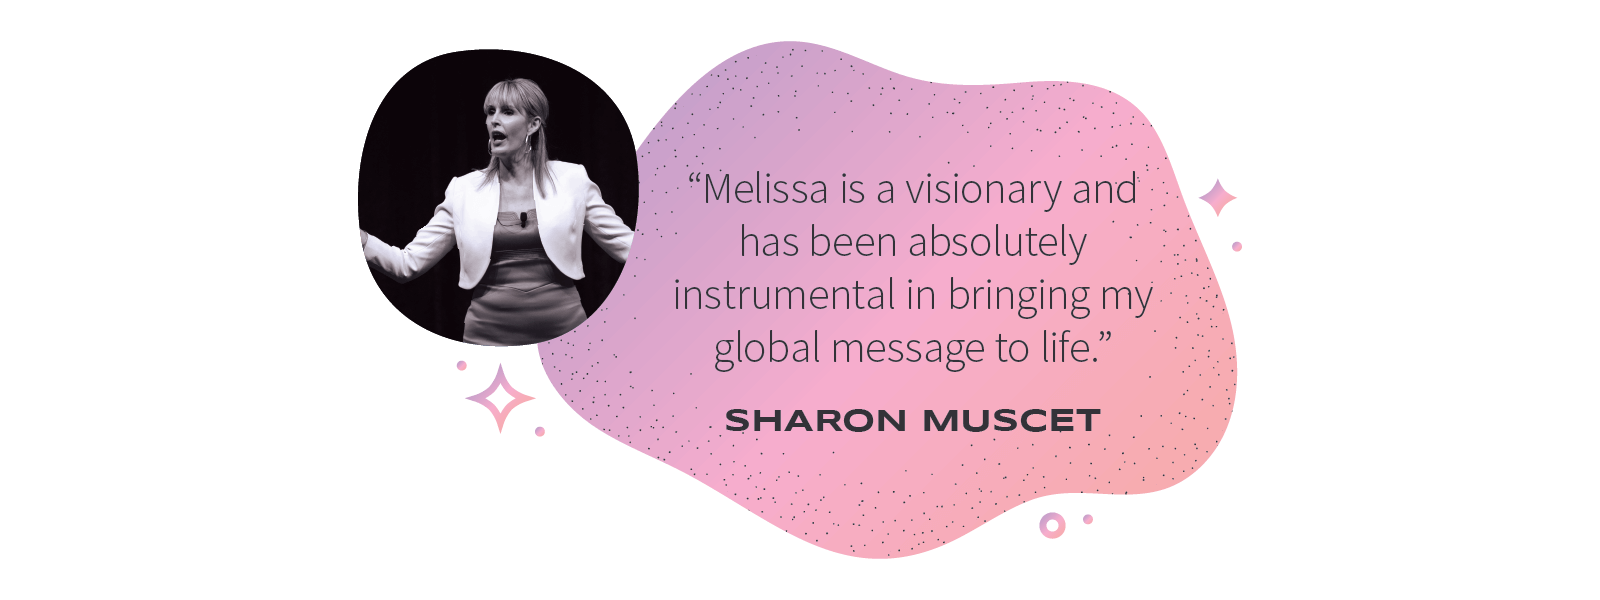 """Melissa is a visionary and has been absolutelyinstrumental in bringing myglobal message to life."" – Sharon Muscet"